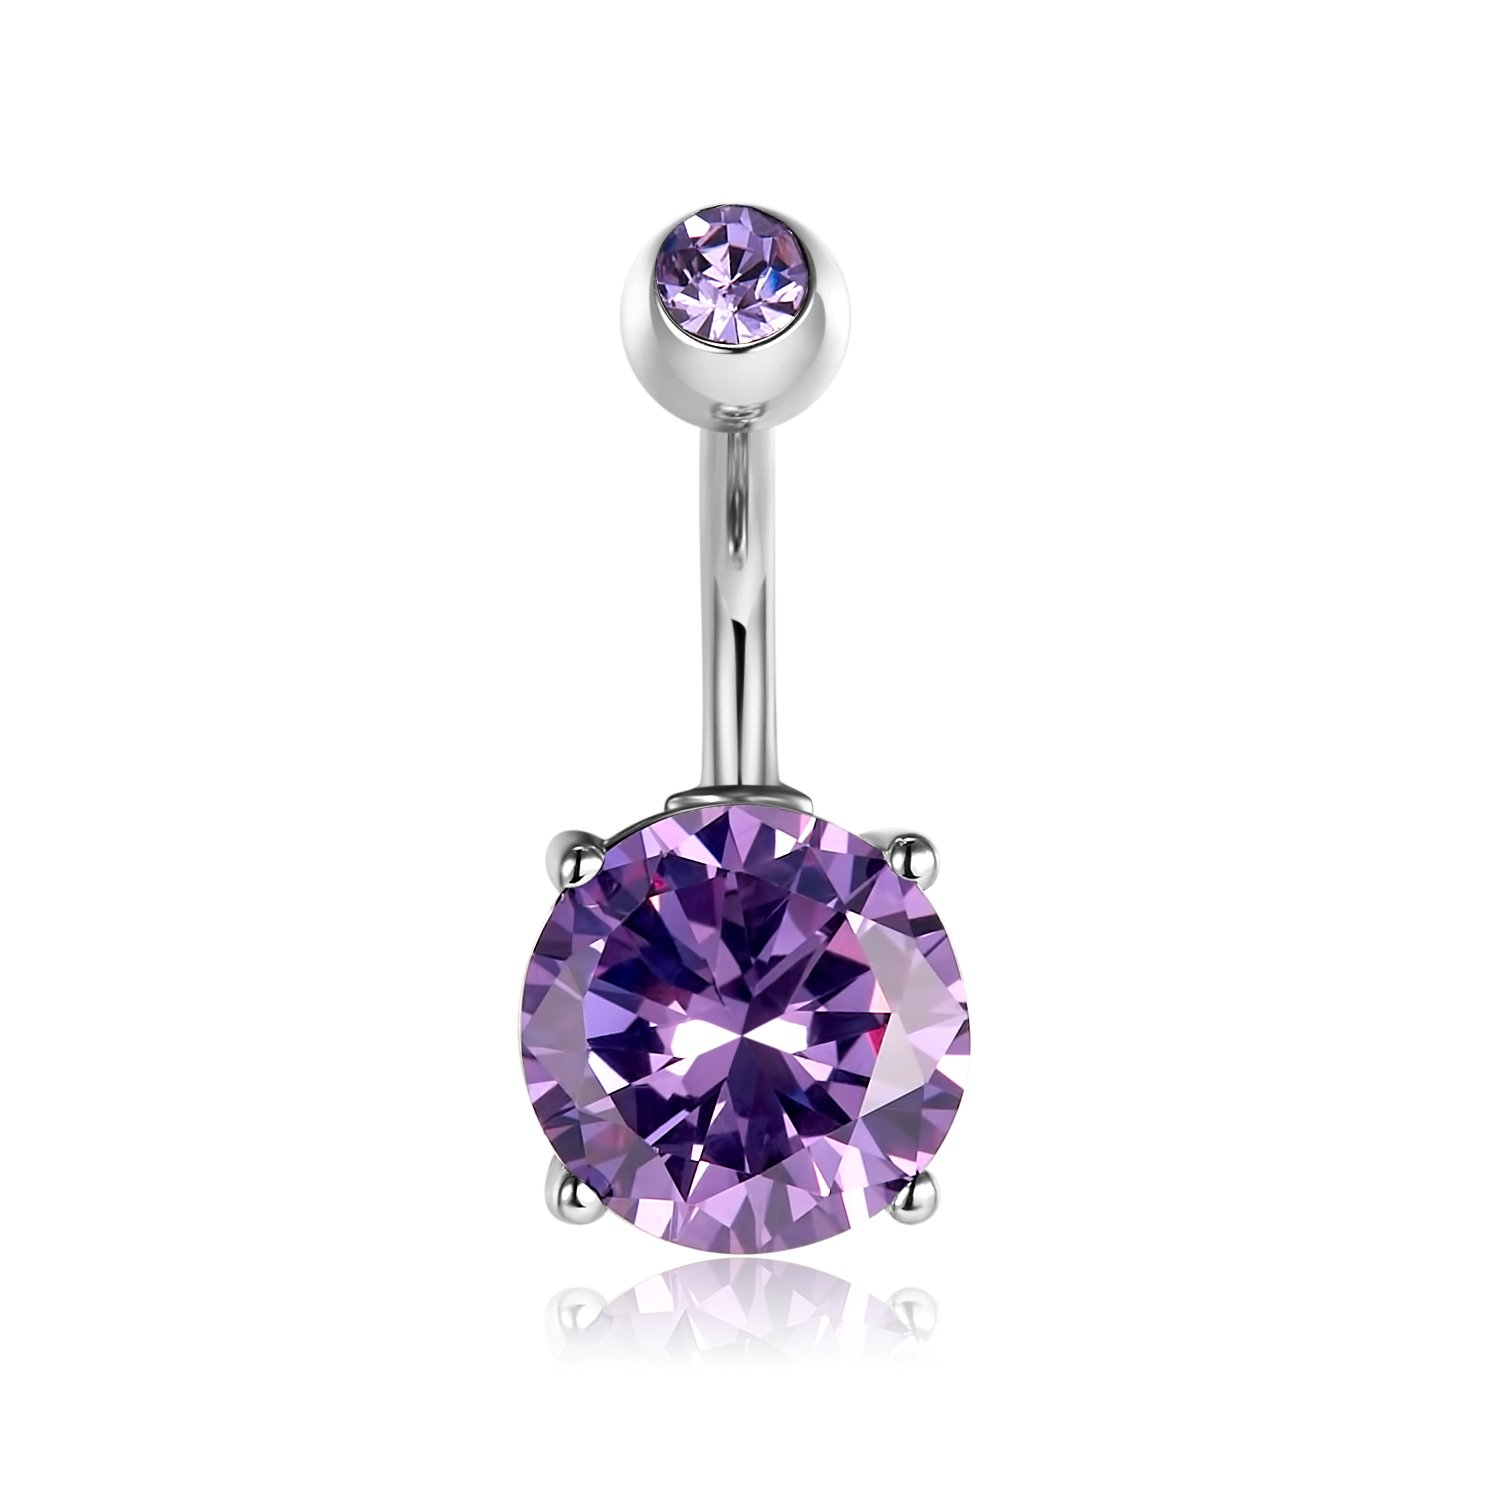 Vcmart Belly Button Rings Silver Bar Purple Crystal For Women Navel Rings Curved Barbell Body Piercing